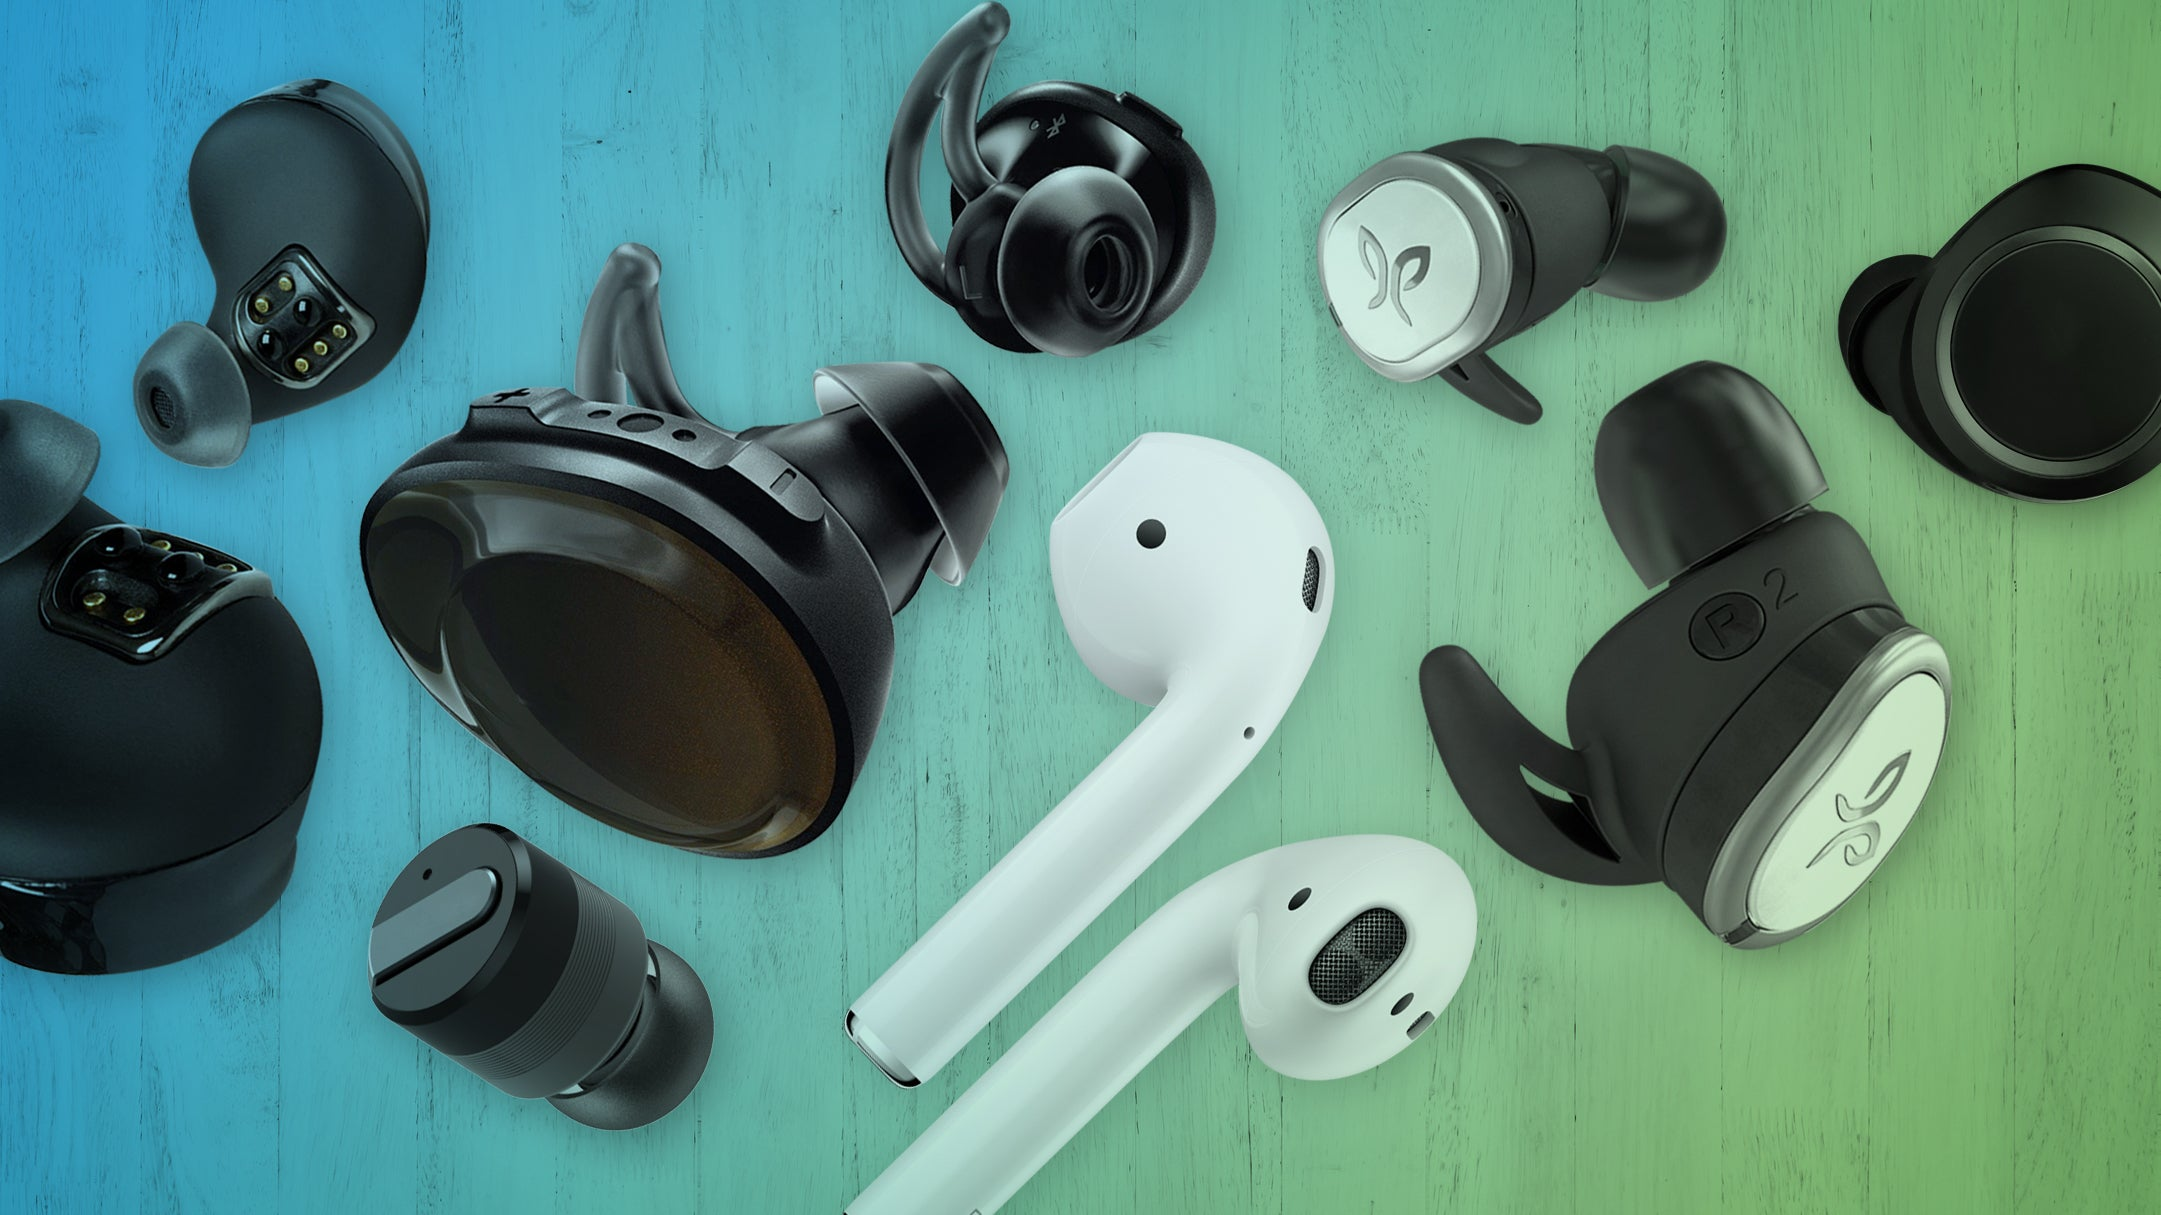 dc8e066ca95 Best true wireless earbuds 2019: Top picks, expert reviews | Macworld